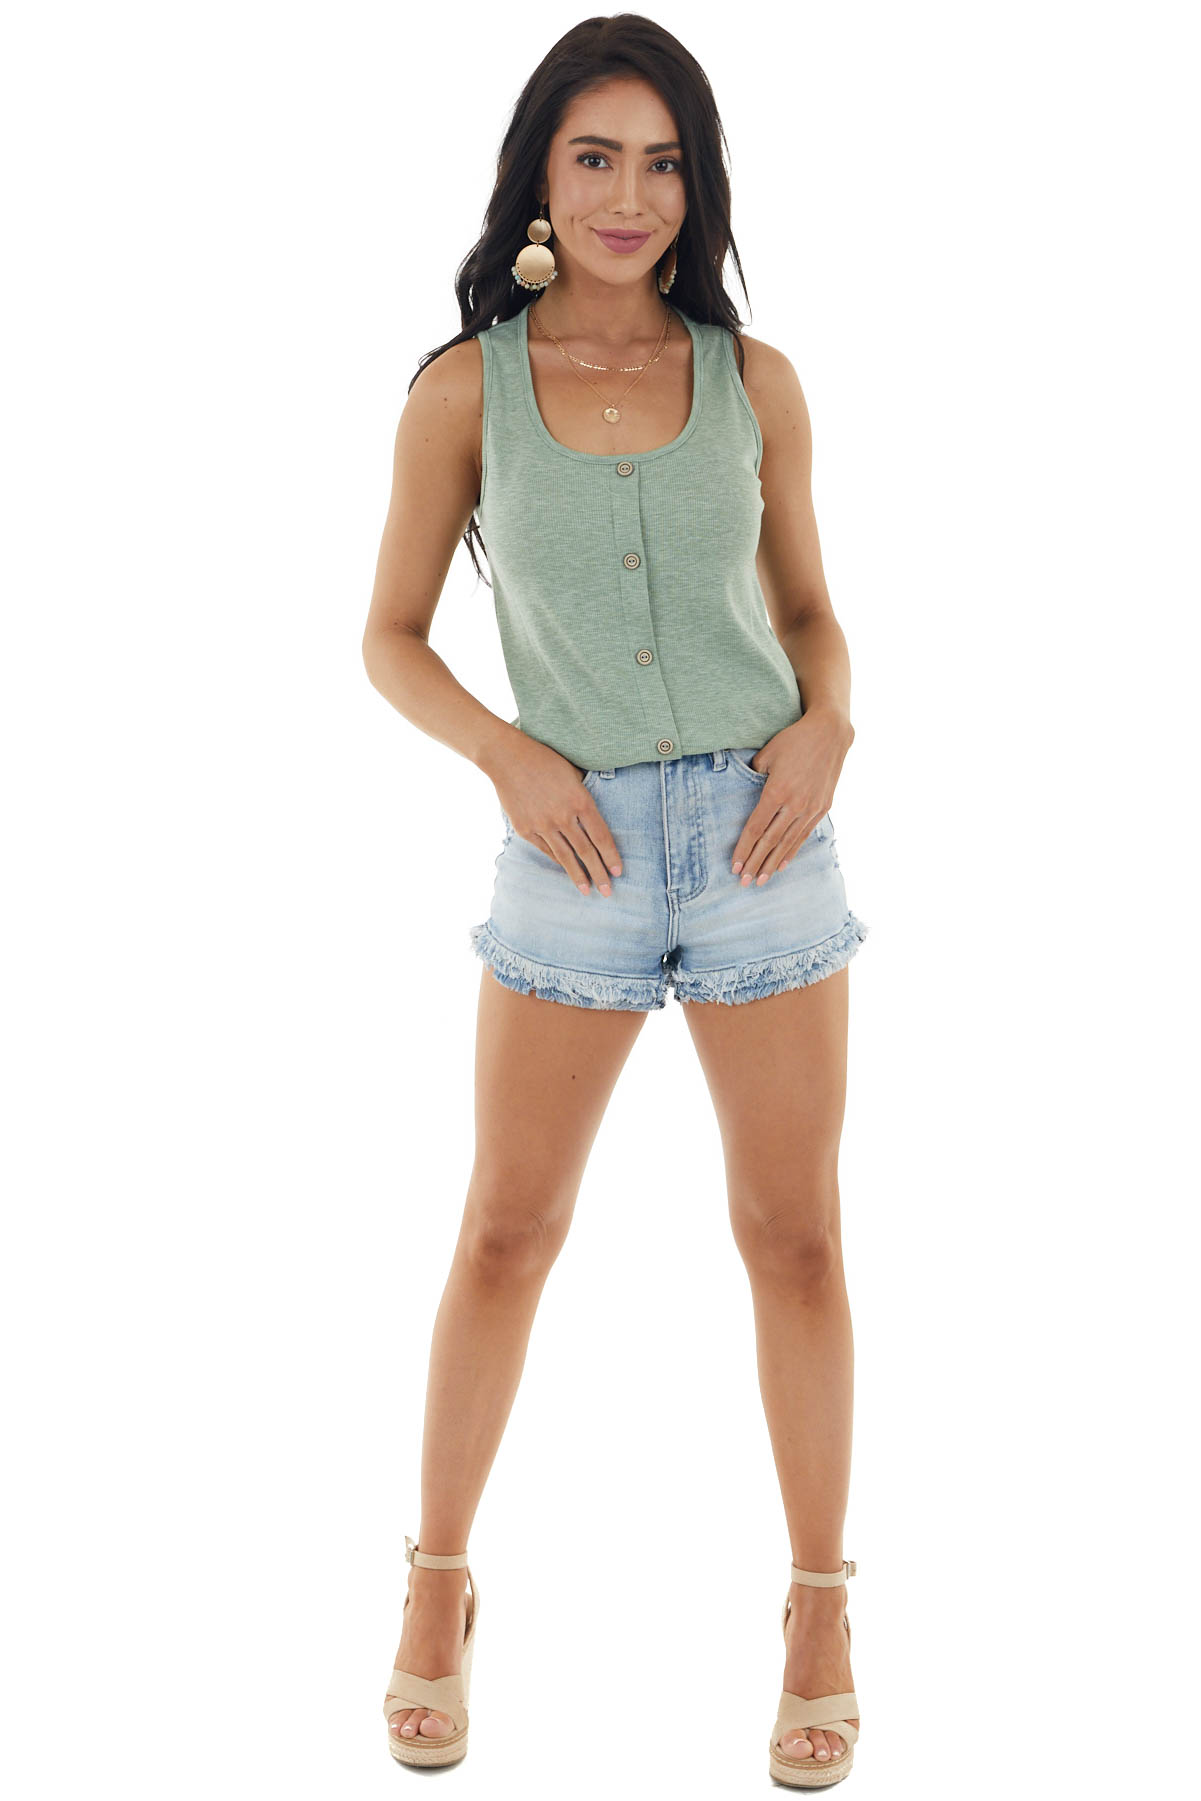 Heathered Sage Stretchy Ribbed Knit Button Up Tank Top